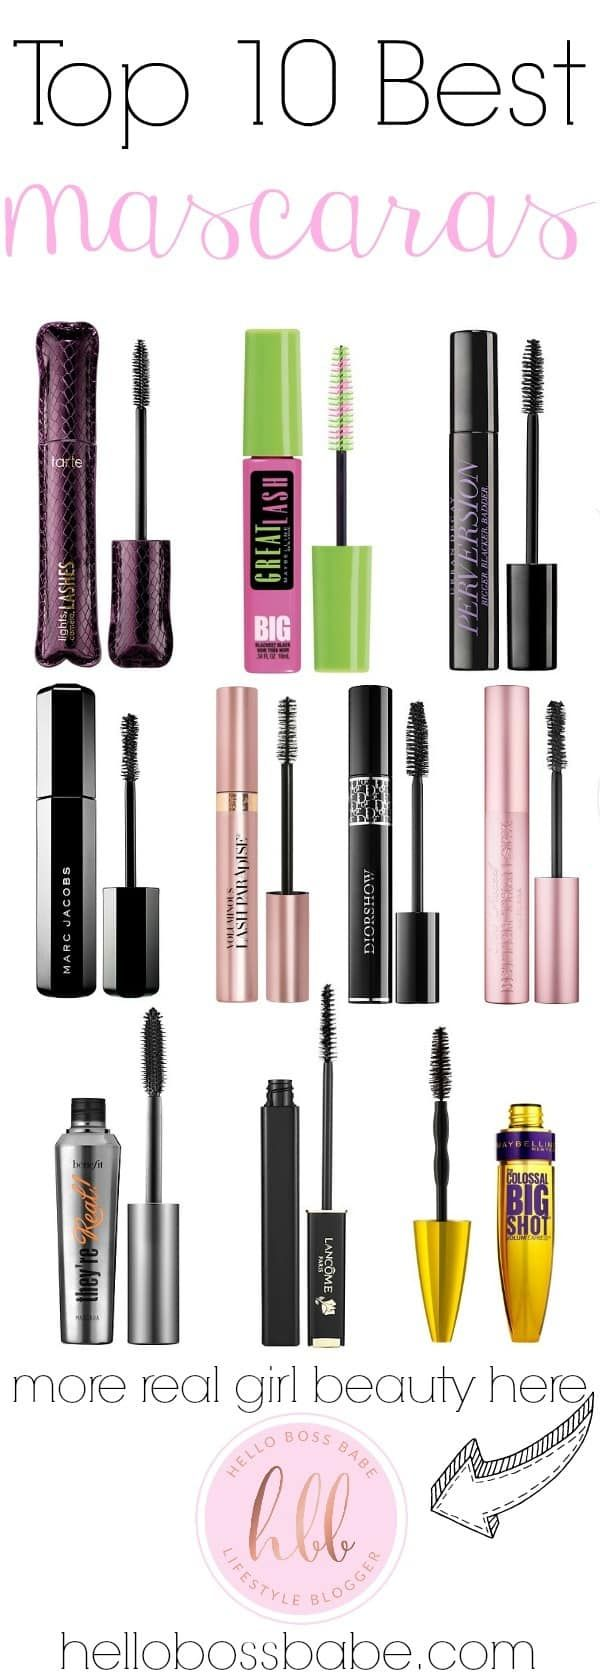 Top 10 Best Mascaras ·